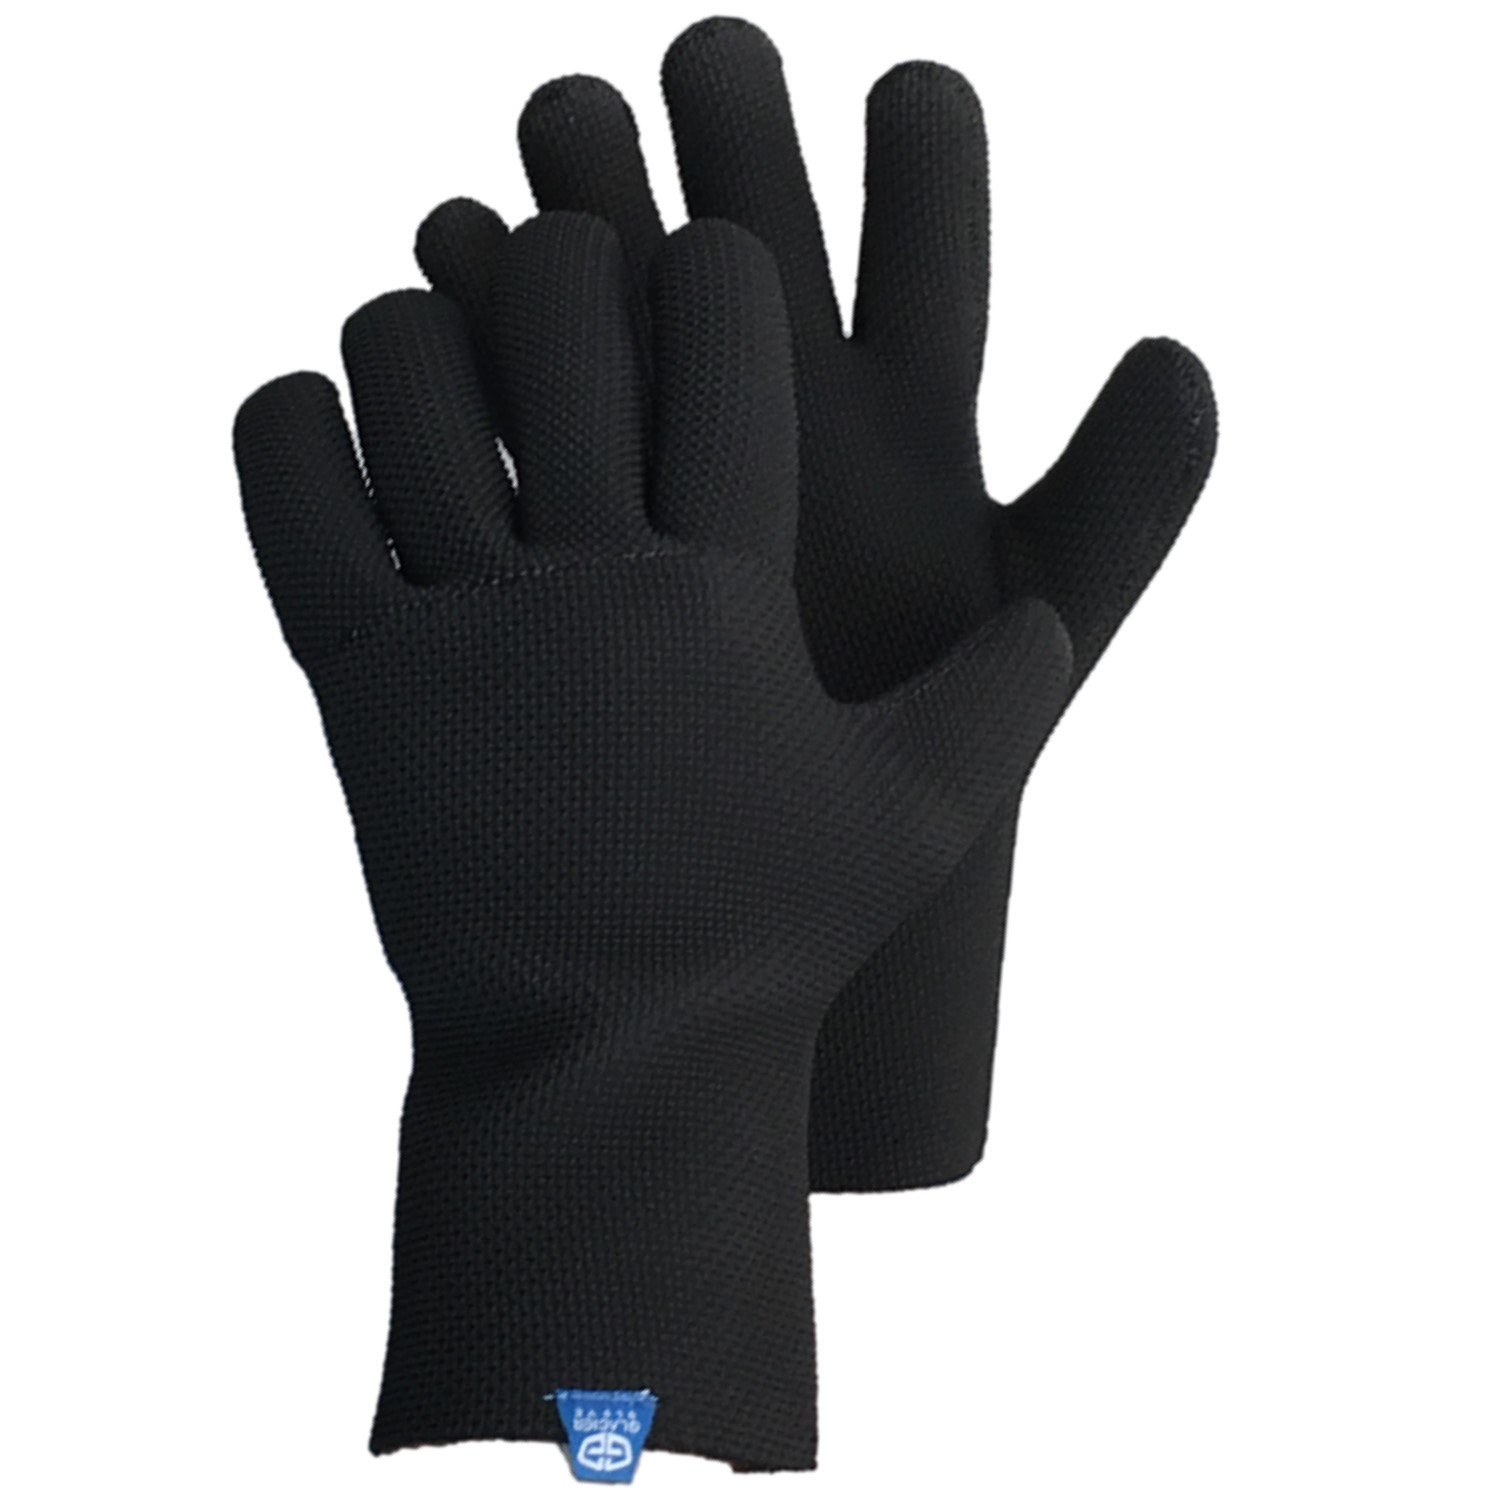 Mens winter gloves xxl - Amazon Com Glacier Glove Ice Bay Fishing Glove Glacier Glove Ice Bay Fishing Glove Black X Large Sports Outdoors